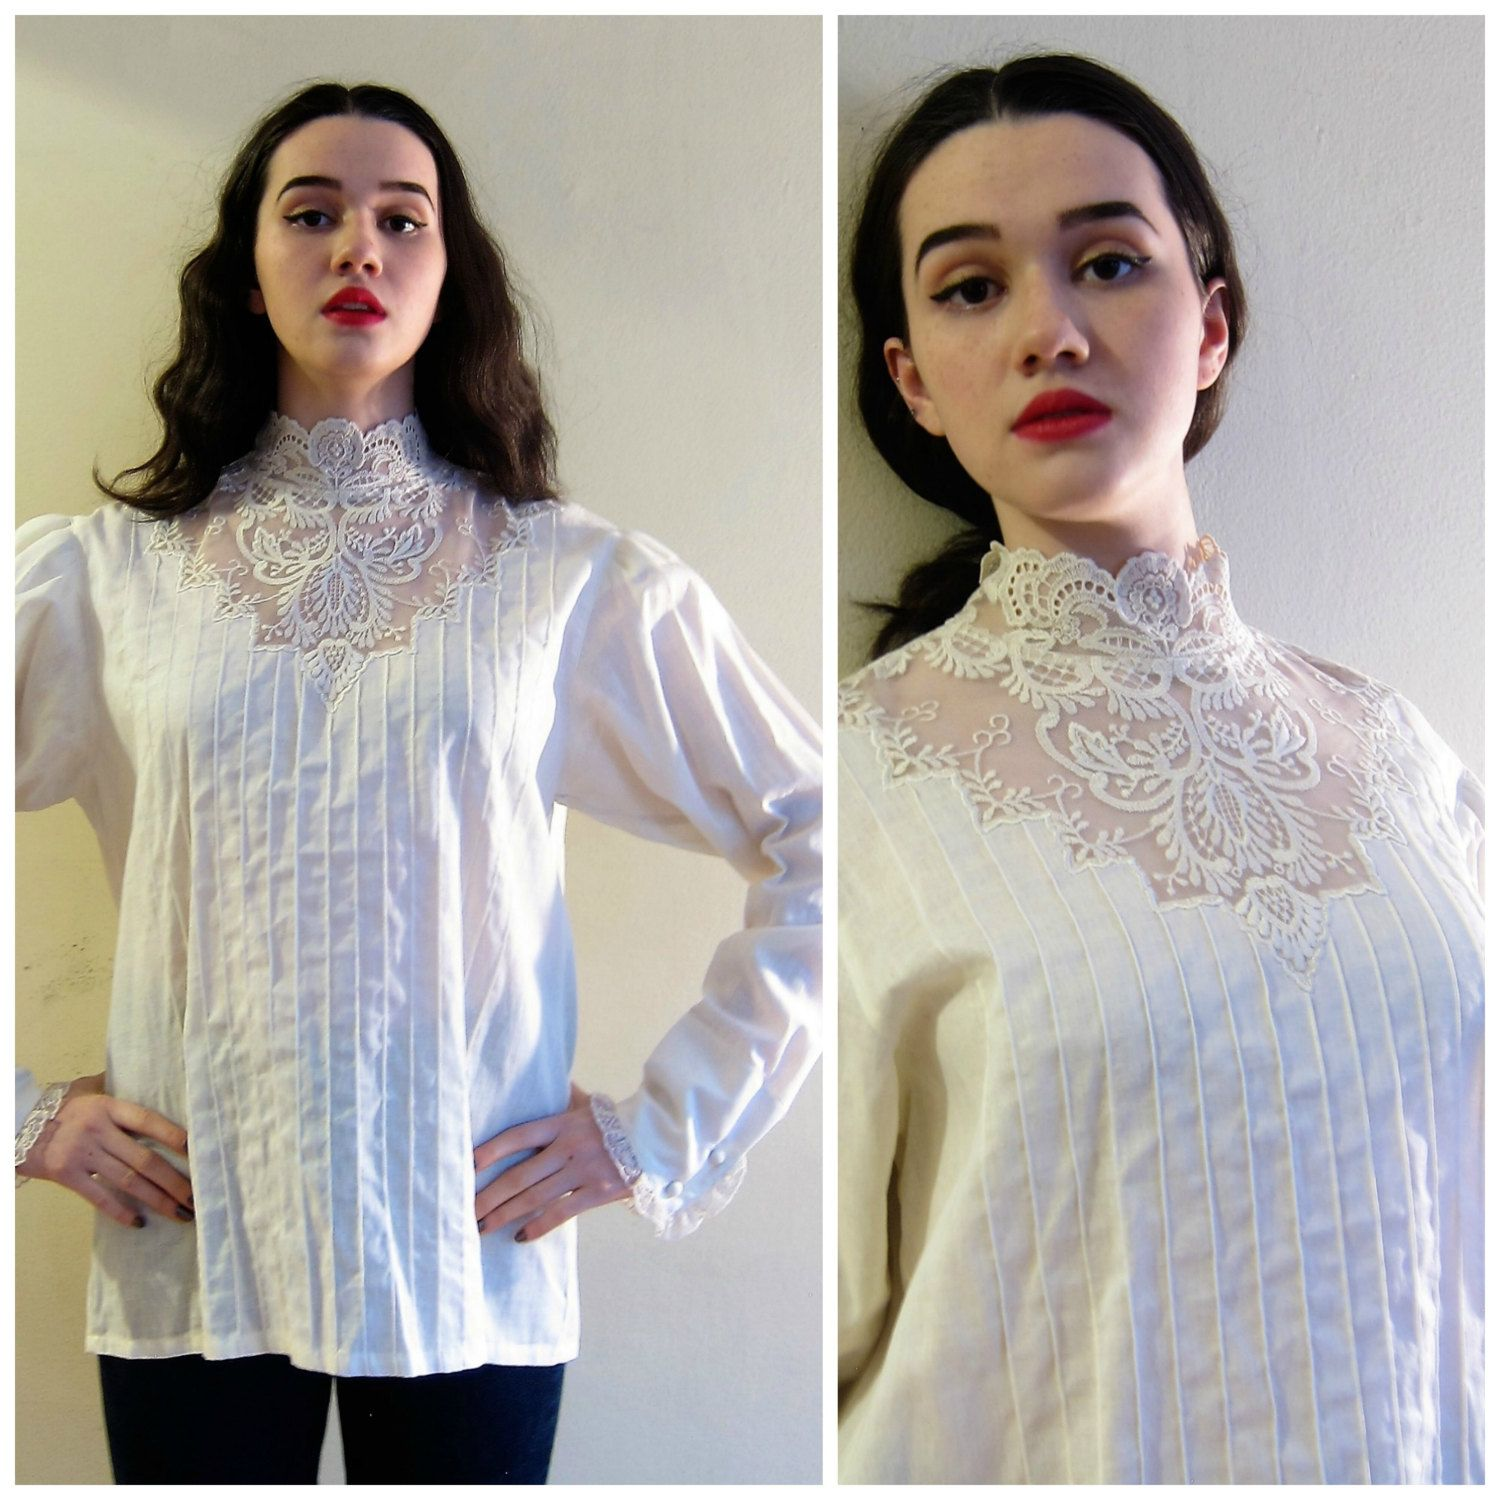 c7516847495d43 Vintage 1970s Neo-Edwardian Blouse with Lace / 70s Romantic Shirt with Back  Button Closure / Large by BasyaBerkman on Etsy